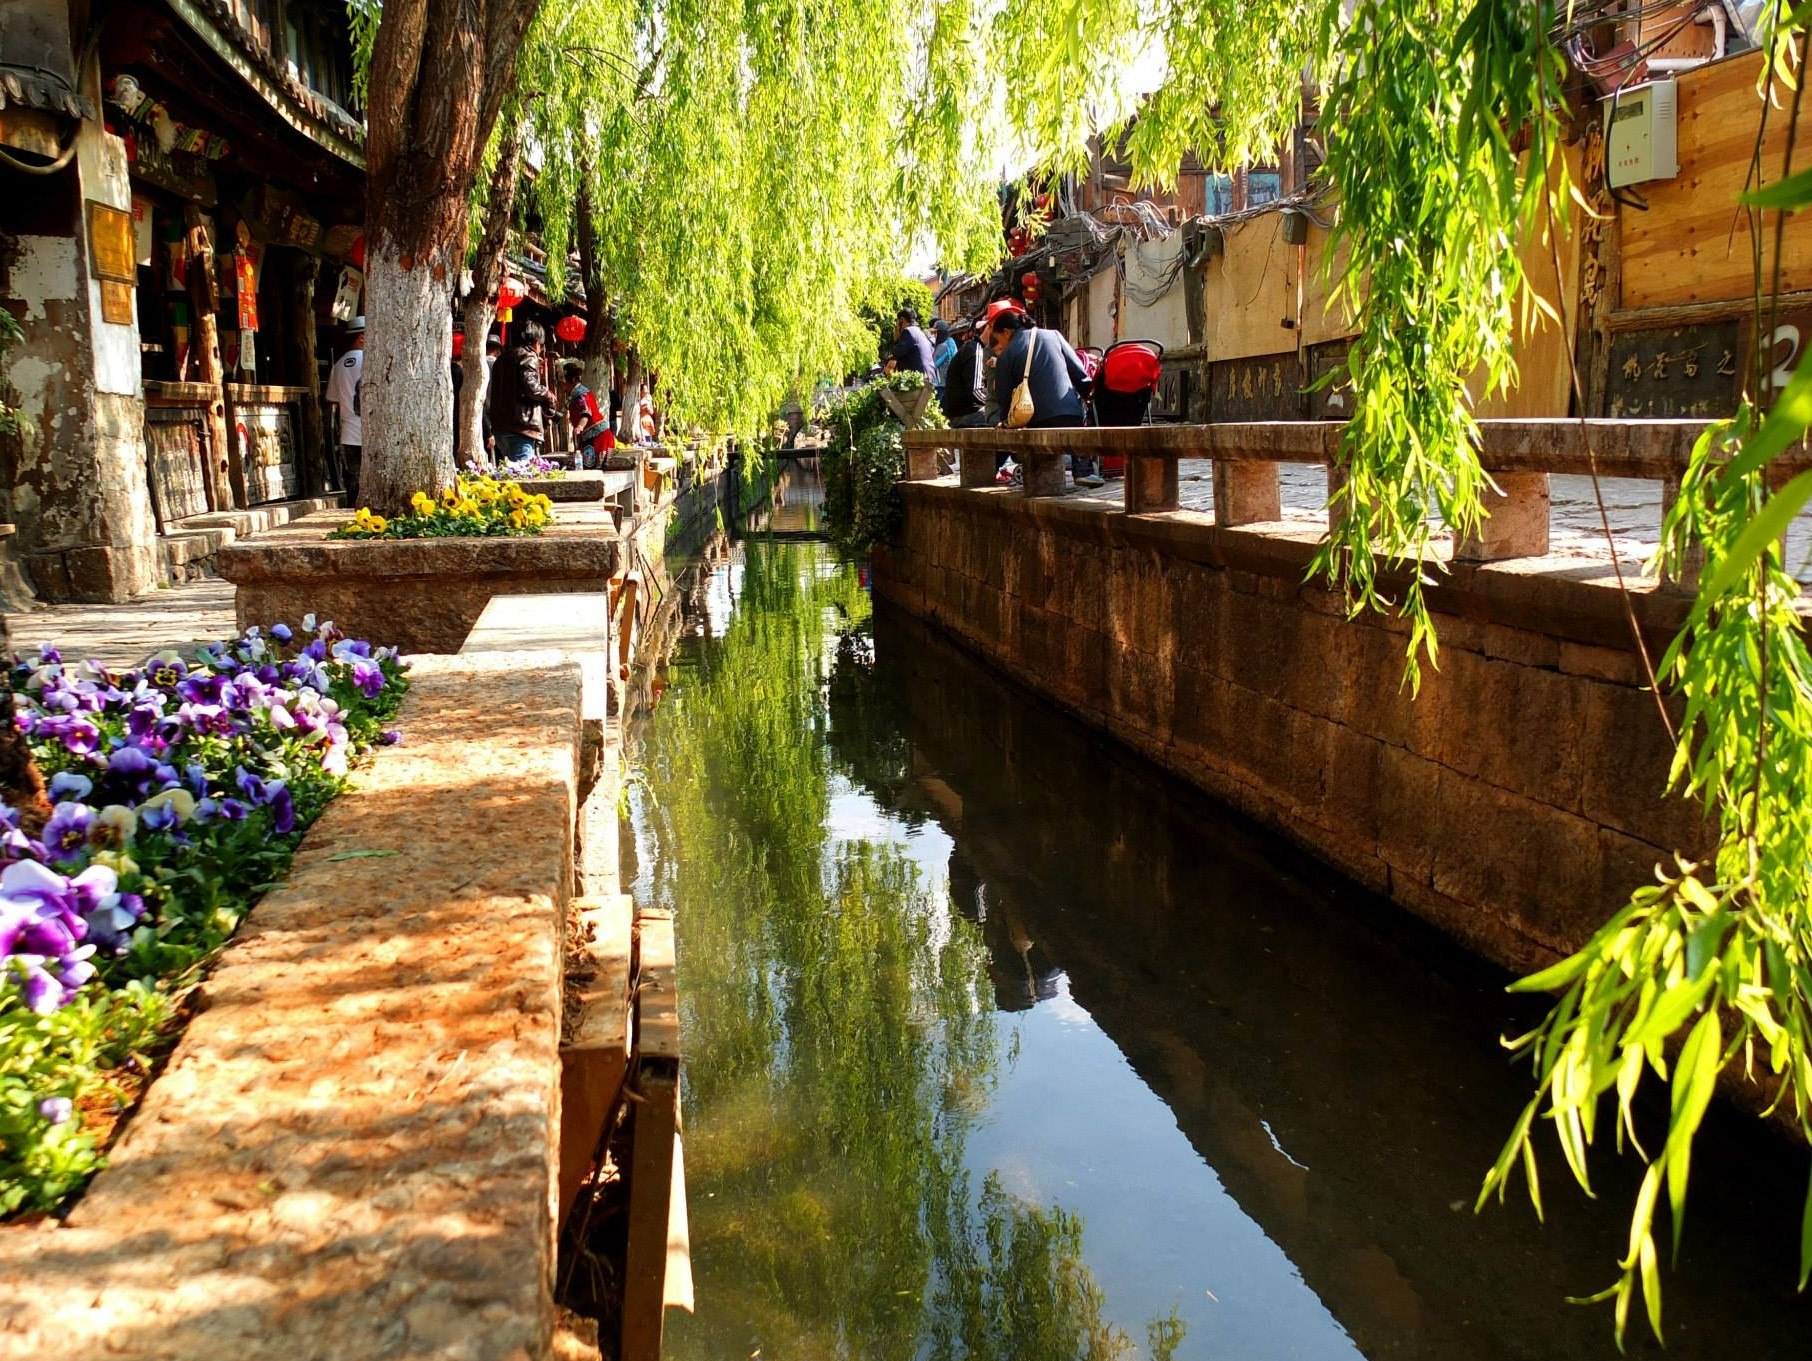 Travel to Lijiang - Venice of China - China Travel Story.com